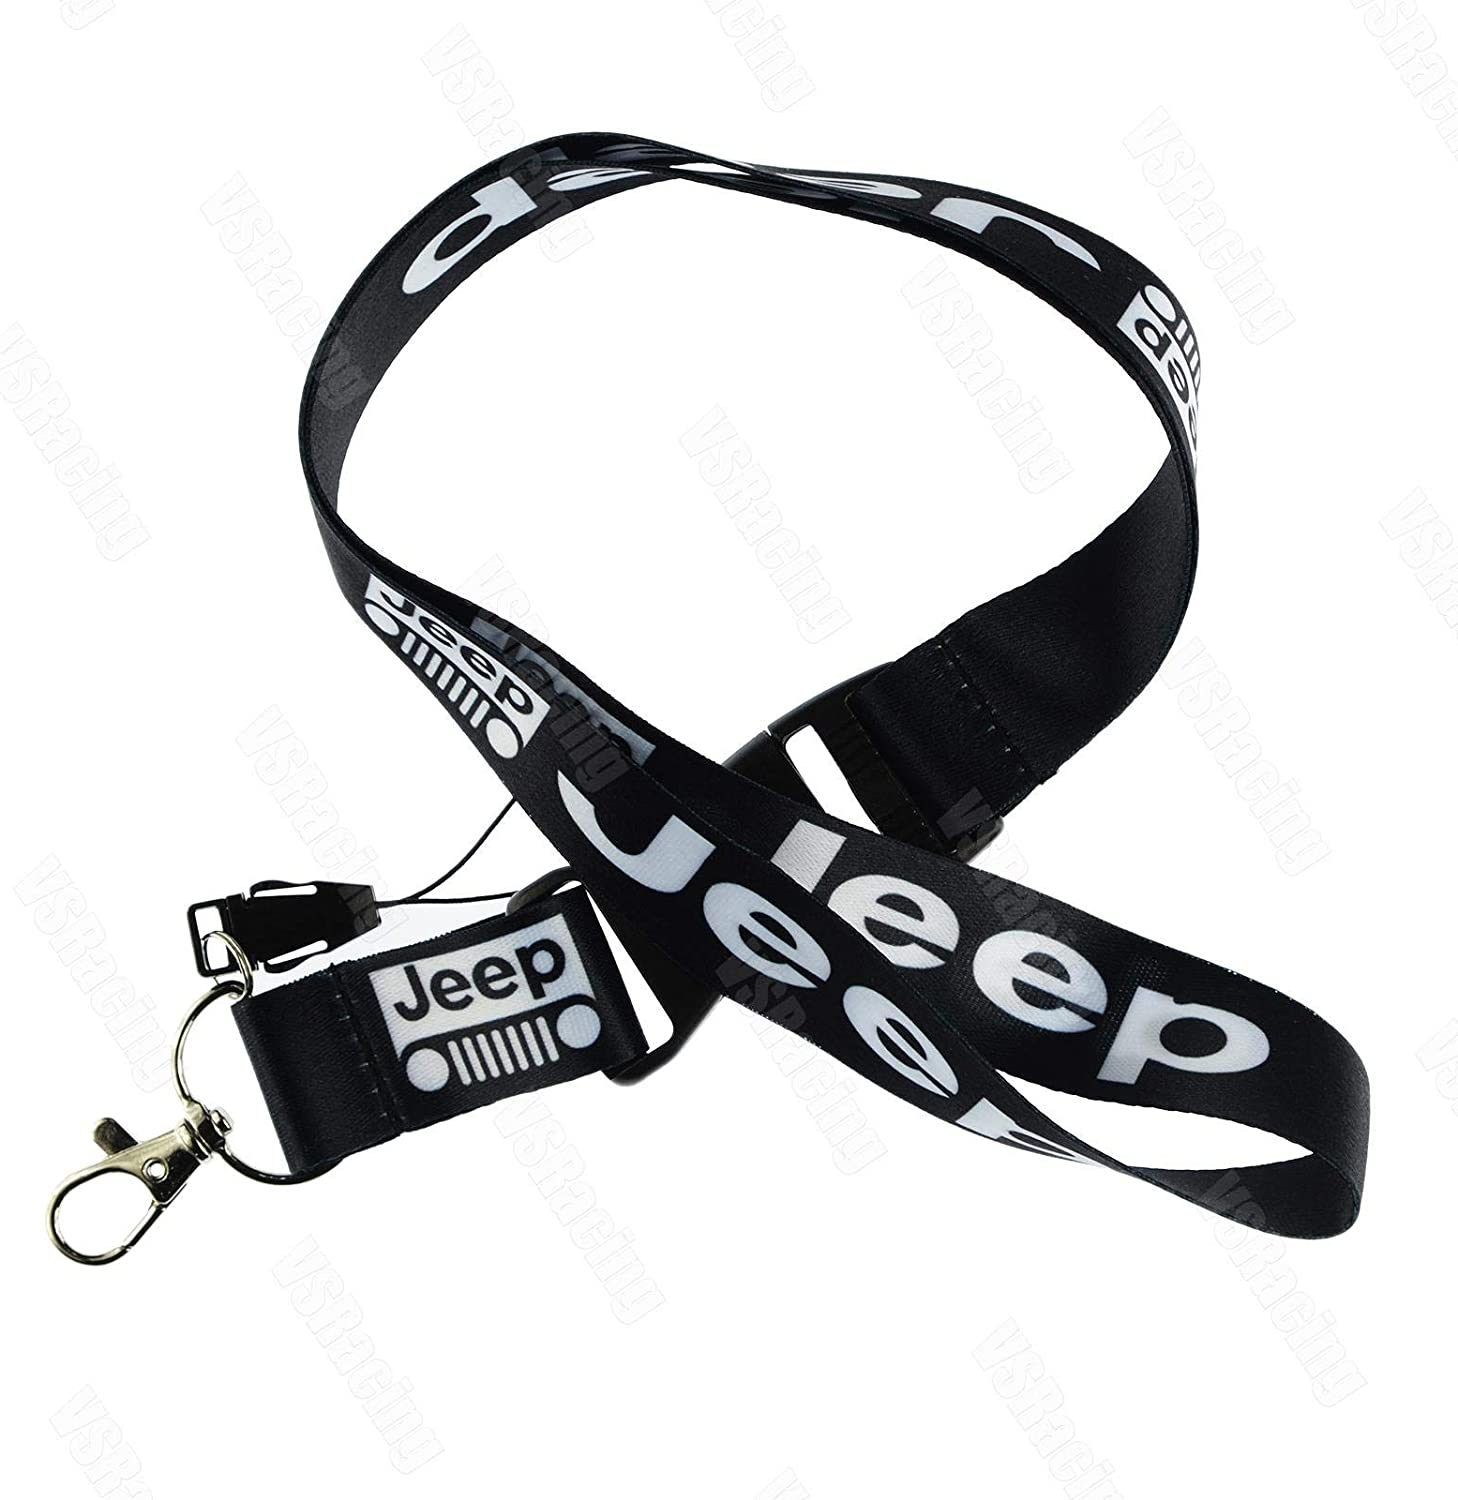 JDM Style Lanyard for Jeep Grand Cherokee Compass Wrangler Renegade Car Painting Cellphone Lanyard JDM Racing Car Keychain ID Holder Mobile Red